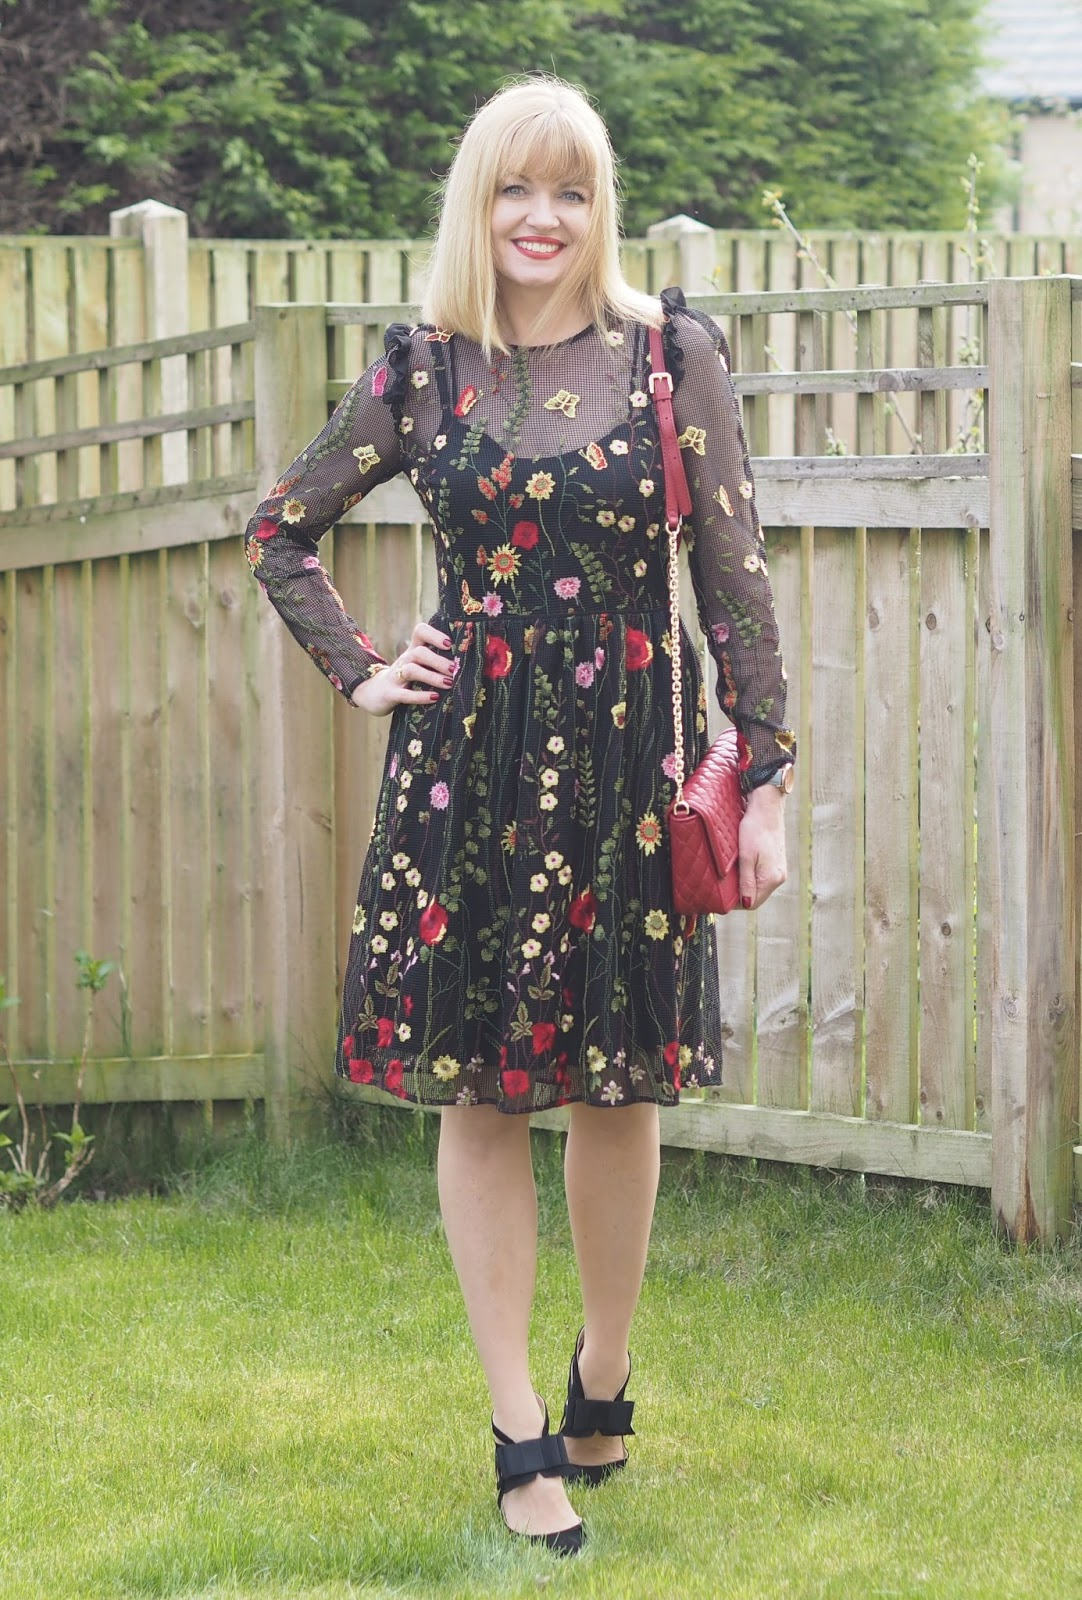 Black mesh floral embroidered dress and high-heeled bow shoes, over 40 fashion and style